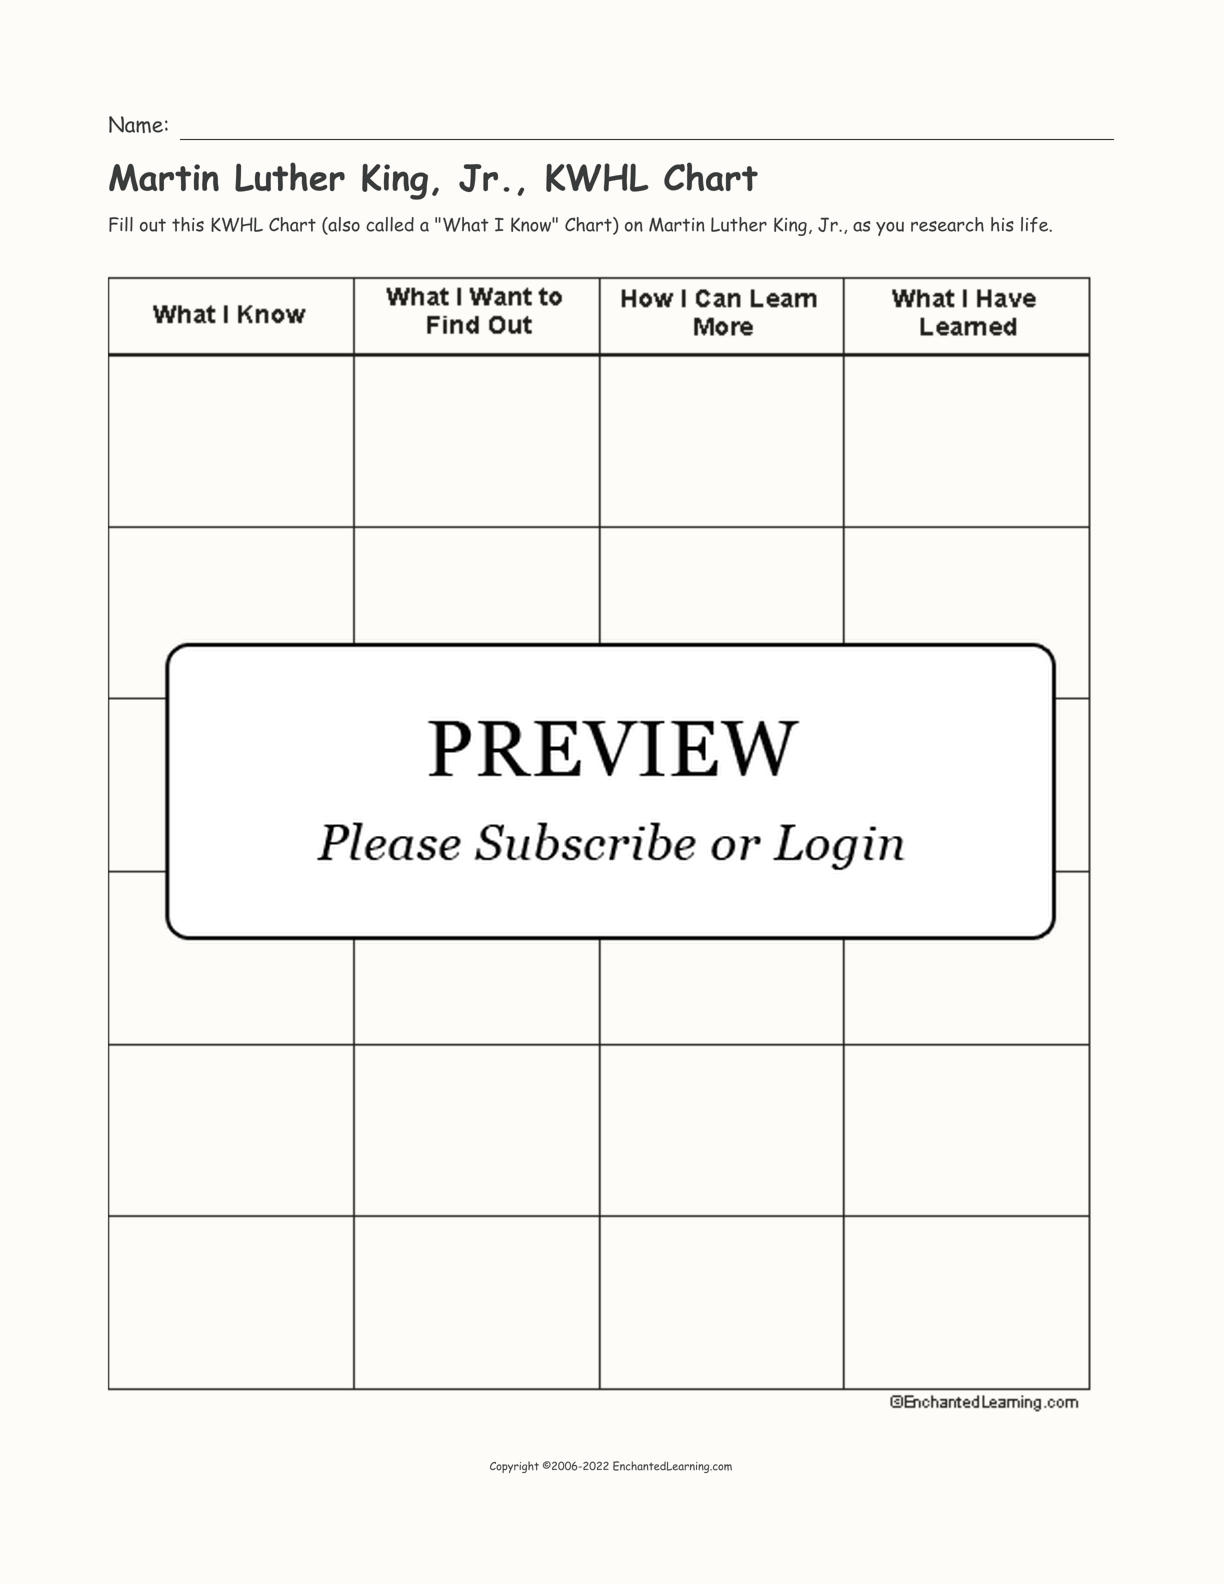 Martin Luther King, Jr., KWHL Chart interactive printout page 1